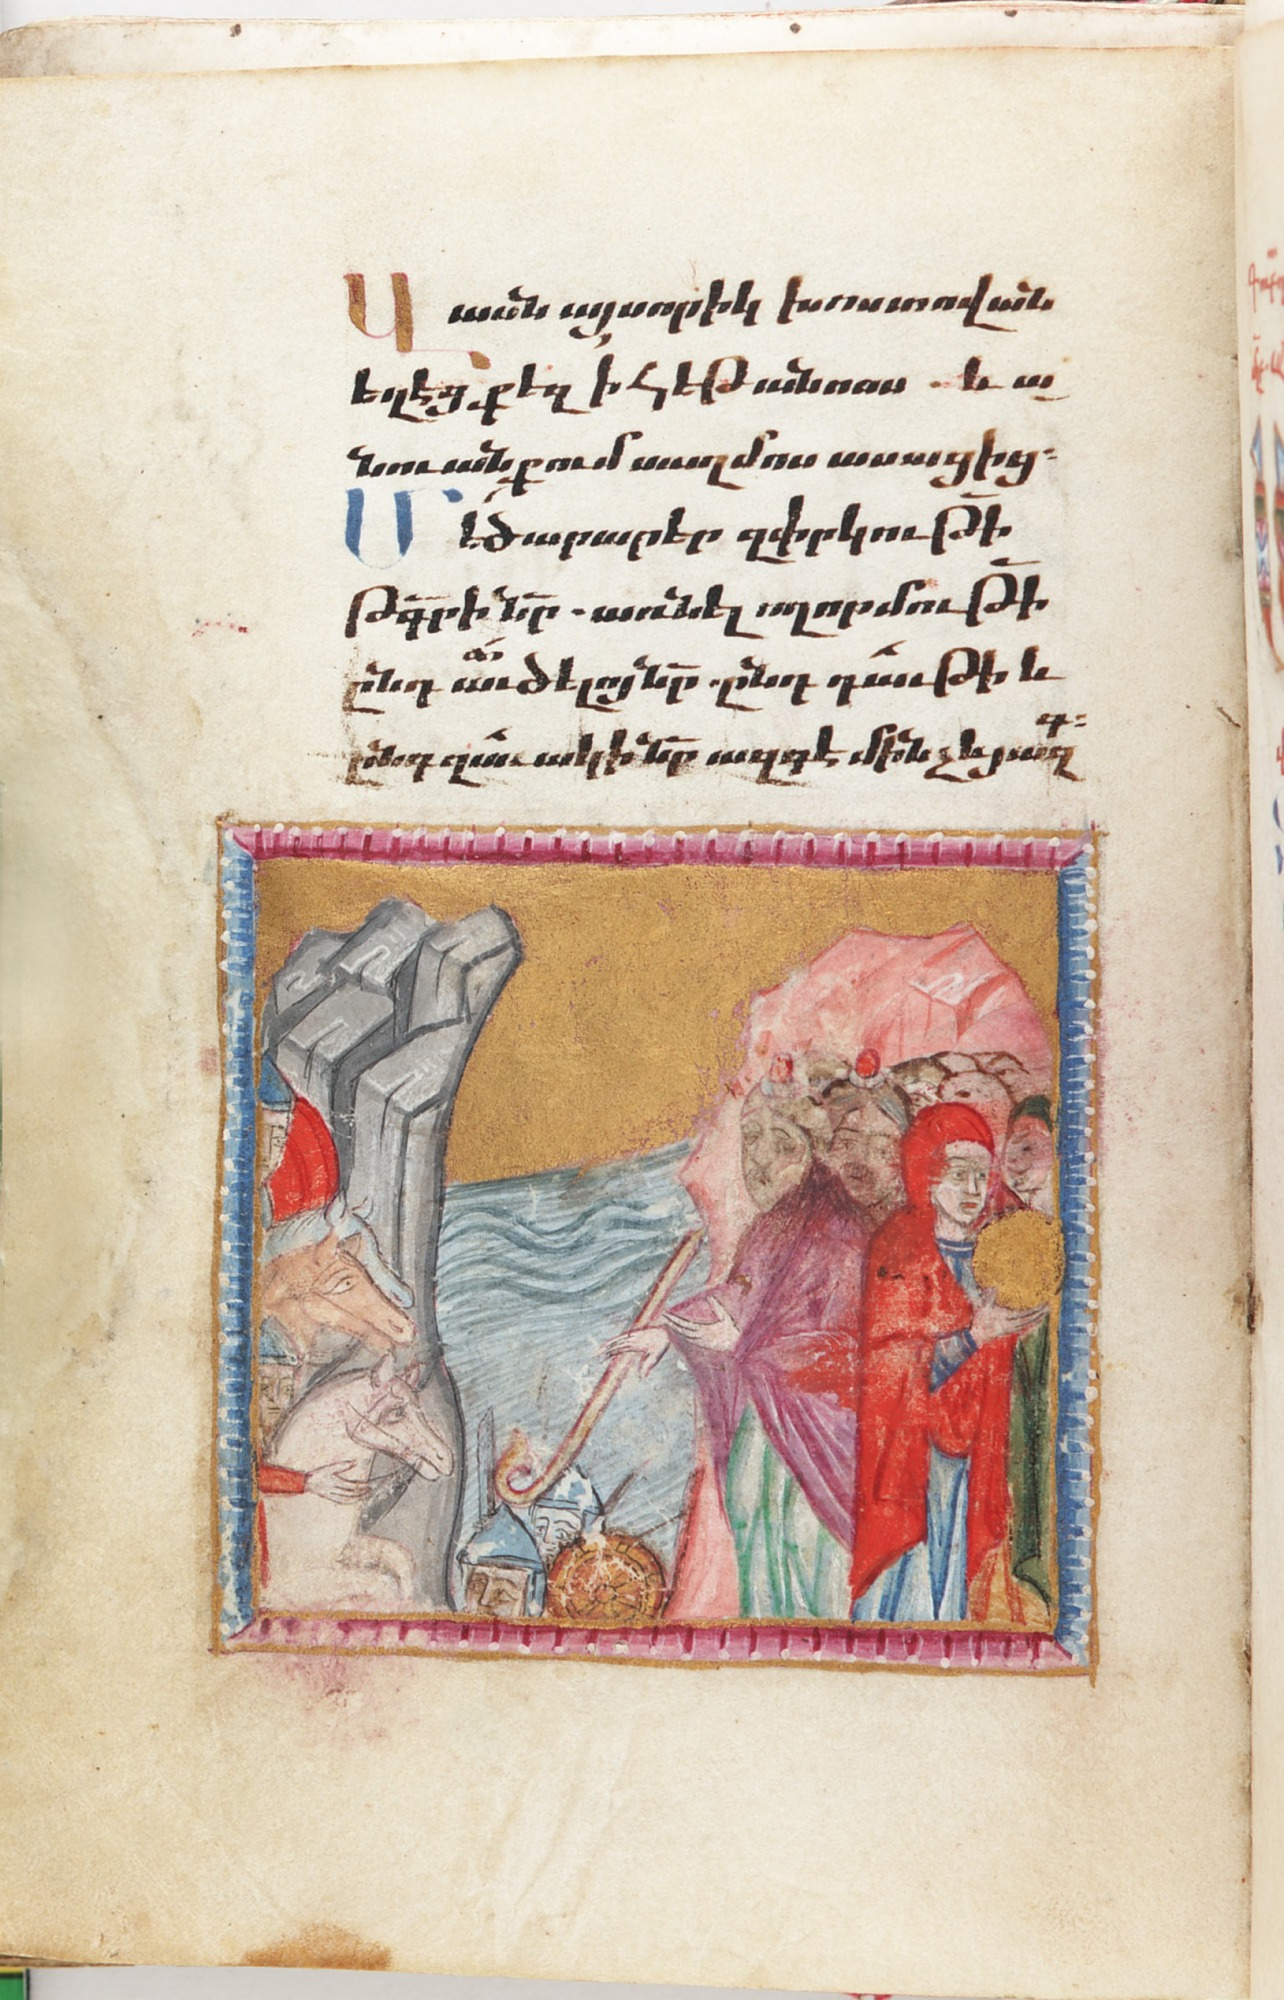 folio 27 verso: The Psalter of the orthodox Church